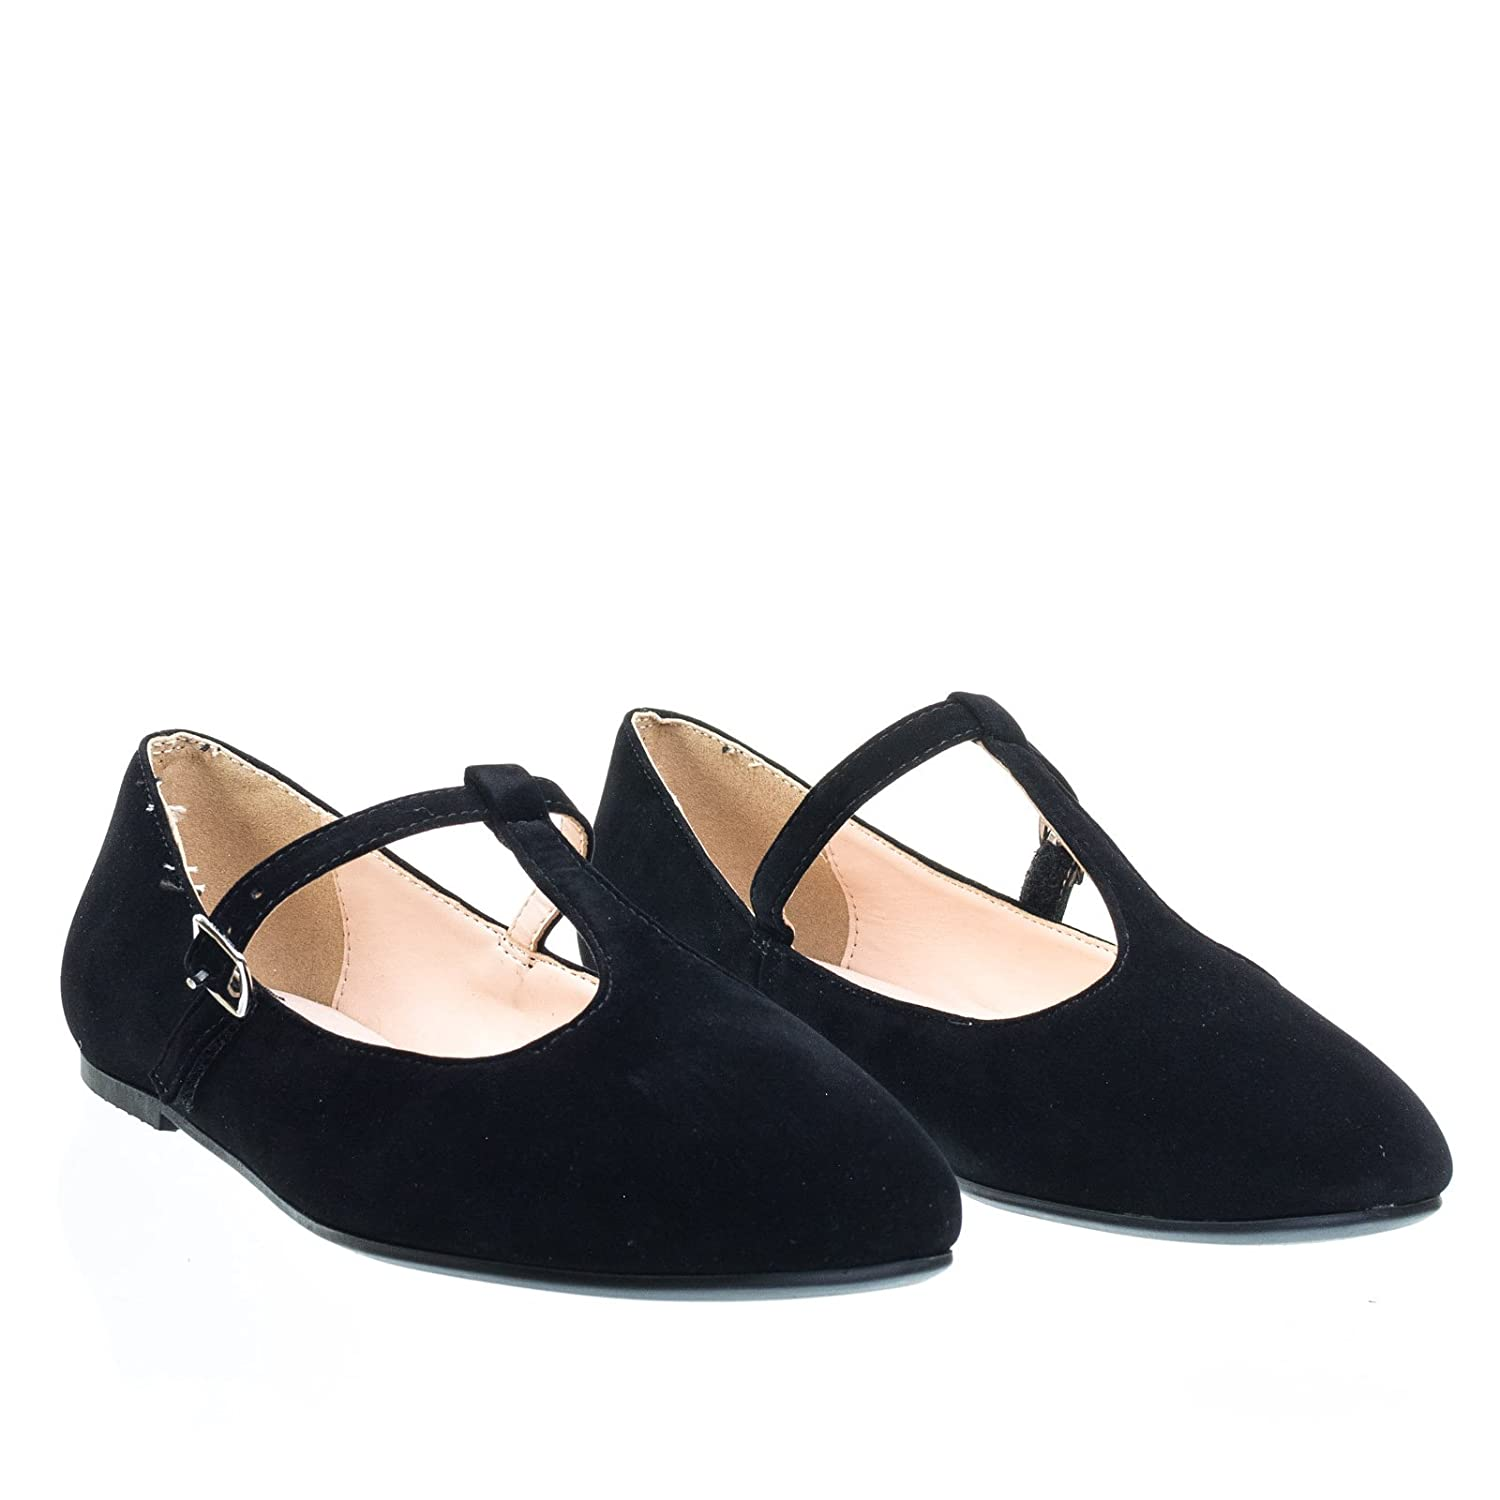 Retro Vintage Flats and Low Heel Shoes Ballet T-Strap Mary-Jane Flats. Womens Ballerina Round Toe Comfort Flats $23.50 AT vintagedancer.com